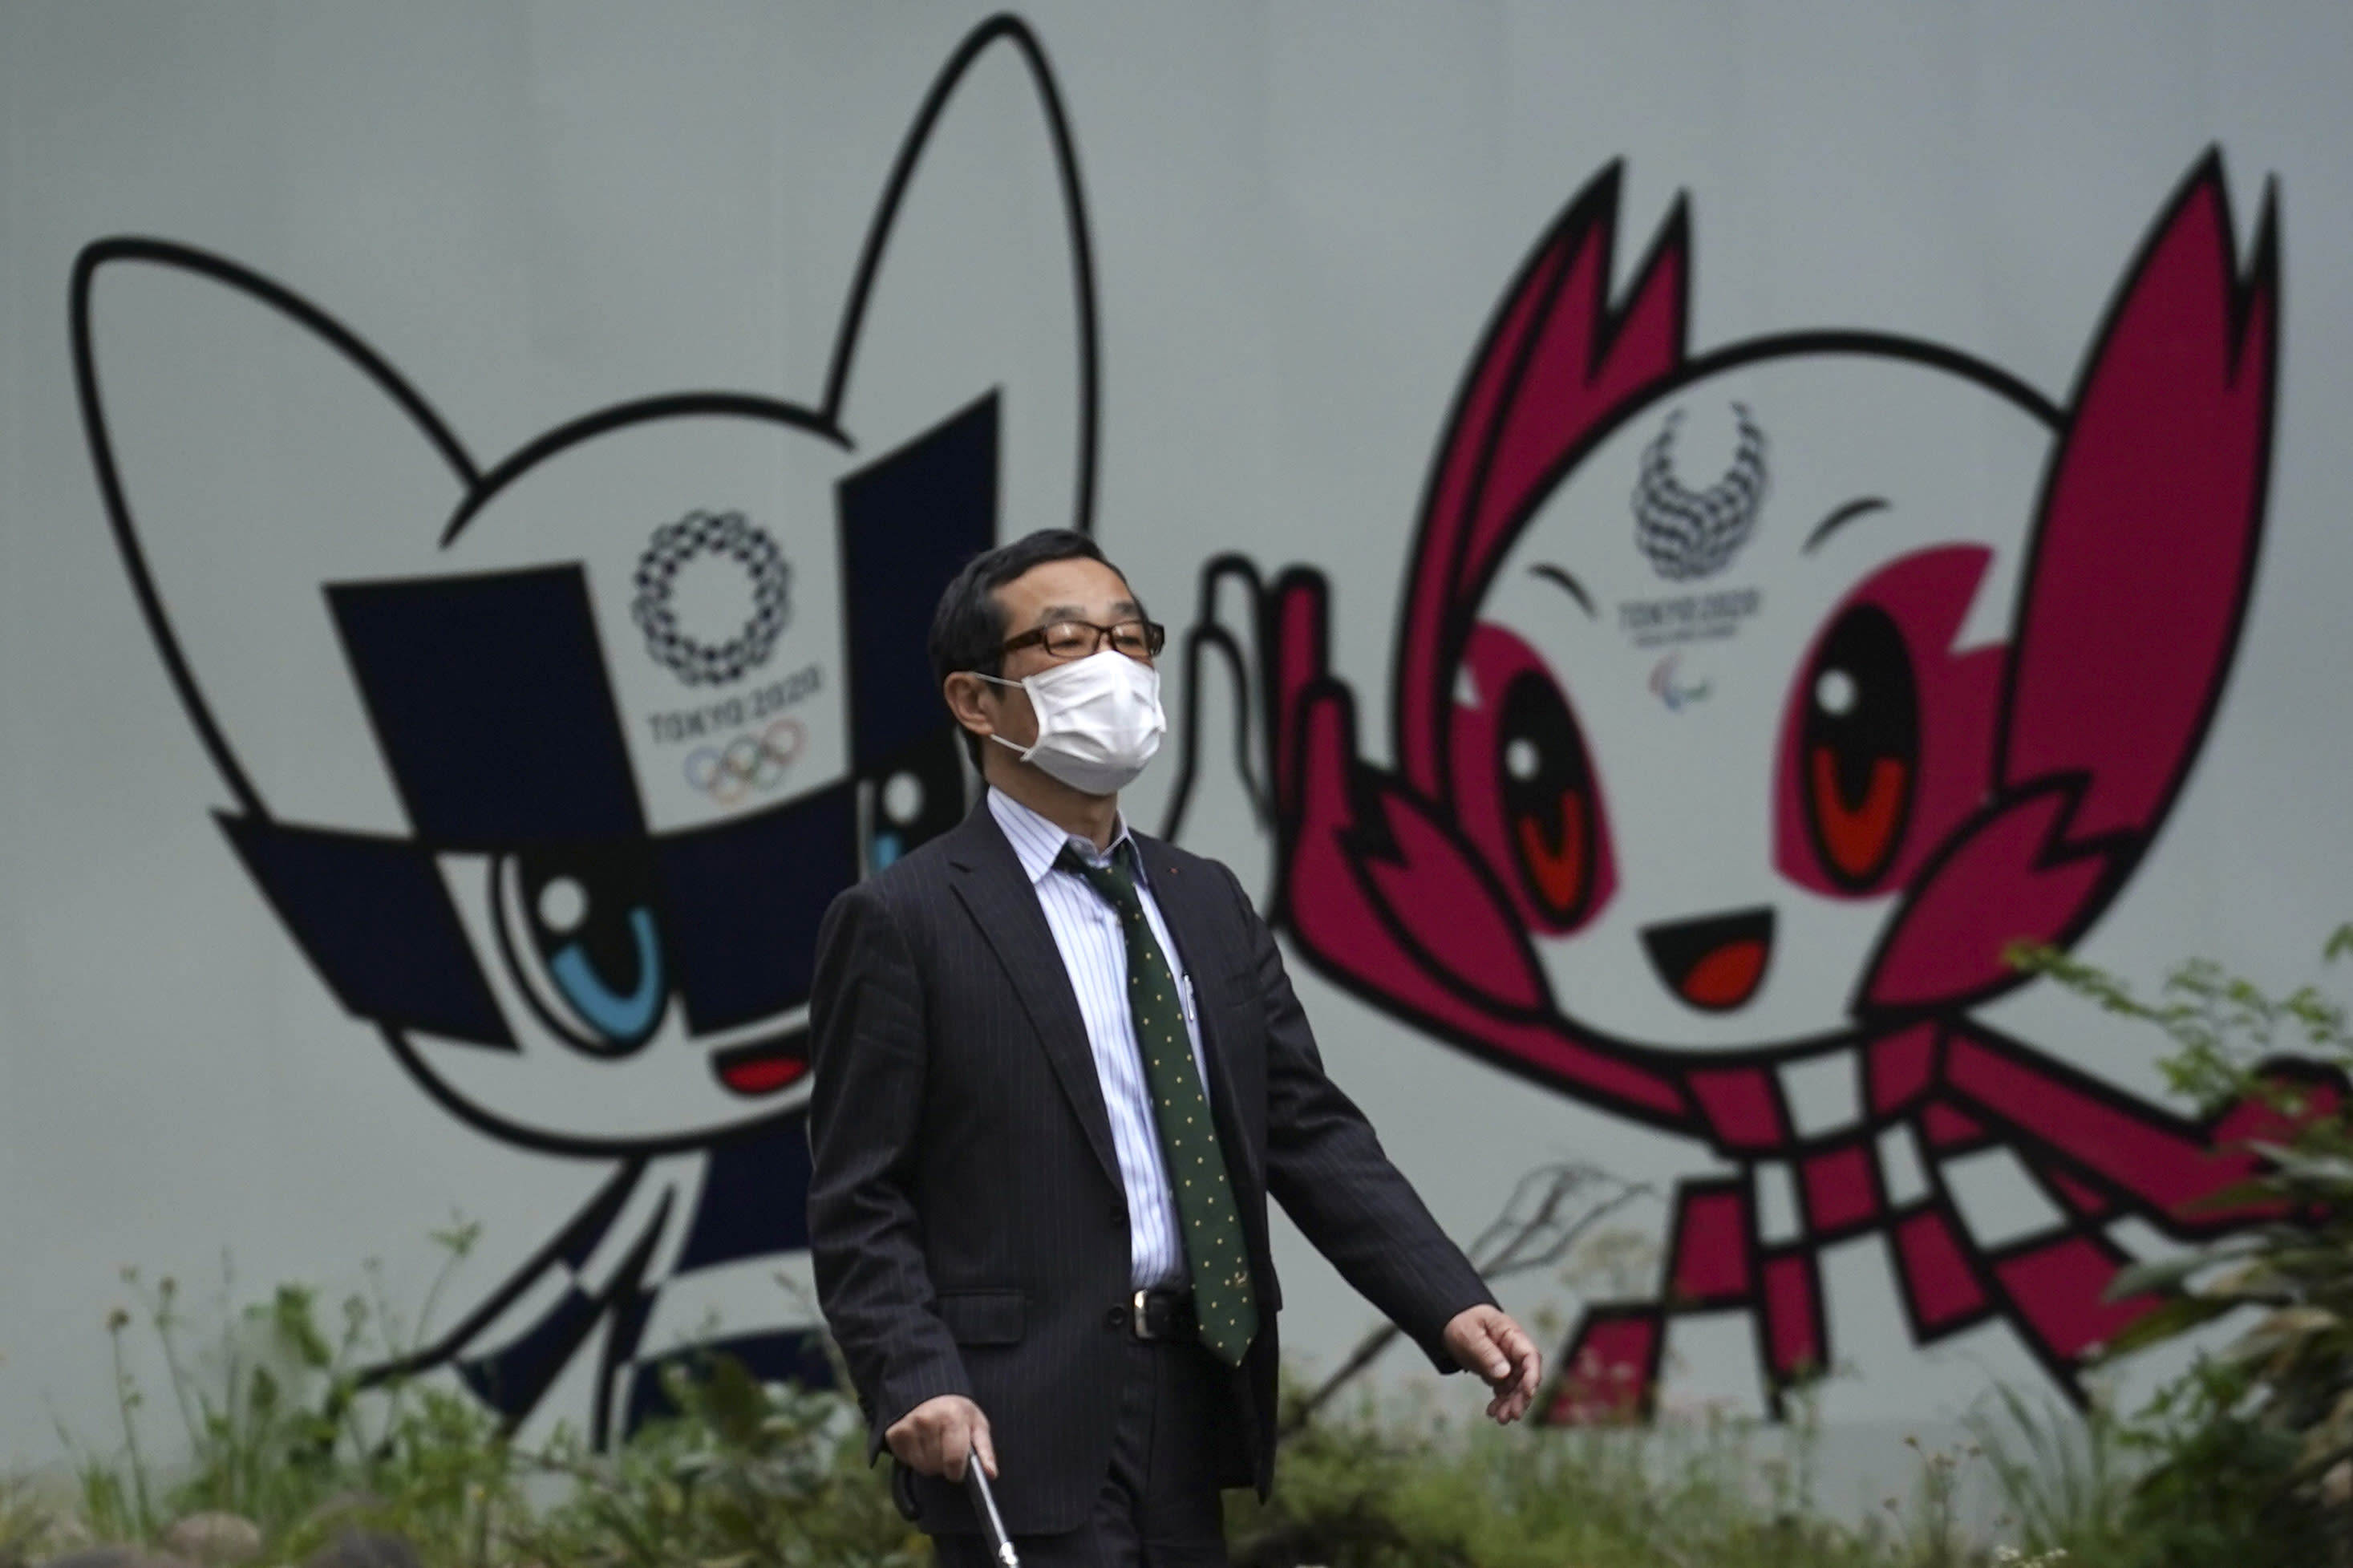 FILE - In this April 28, 2020, file photo, a man with a face mask against the spread of the new coronavirus walks in front of Miraitowa and Someity, mascots for the Tokyo 2020 Olympics and Paralympics at a park in Tokyo. The postponed Tokyo Olympics have again reached the one-year-to-go mark. But the celebration is small this time with more questions than answers about how the Olympics can happen in the middle of a pandemic. That was before COVID-19 postponed the Olympics and pushed back the opening to July 23, 2021. (AP Photo/Eugene Hoshiko, File)